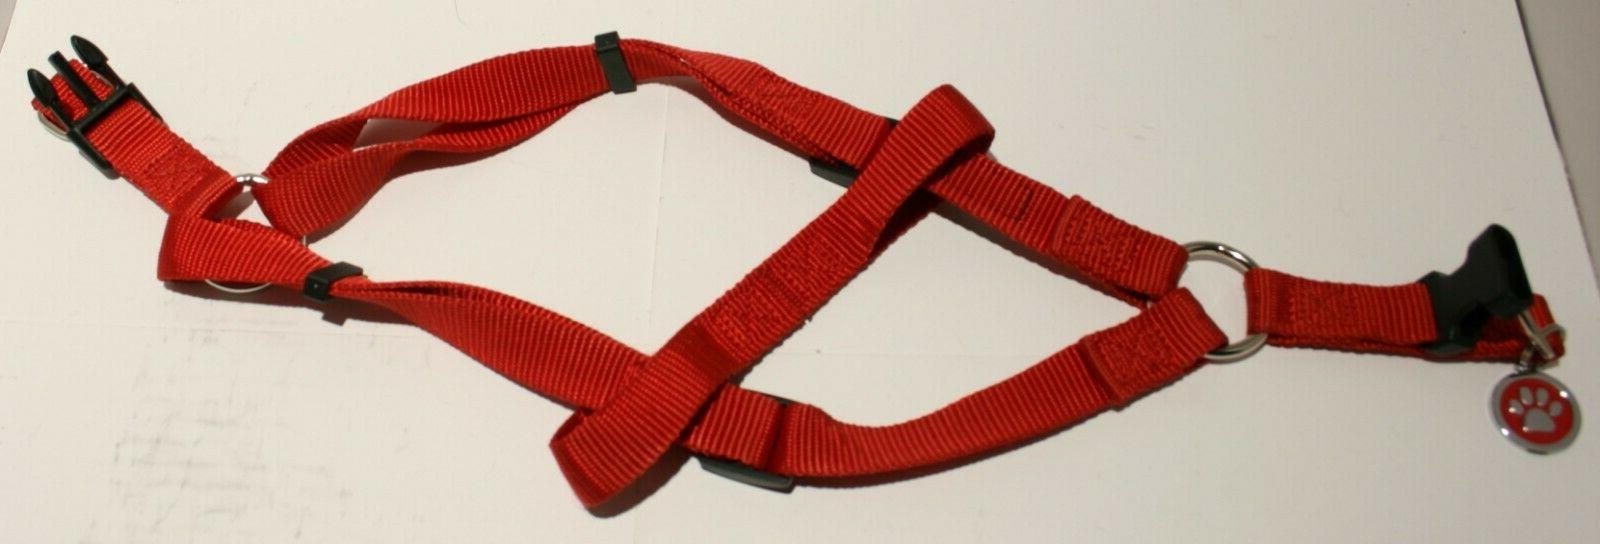 Pupteck Nylon Step Pull Harness